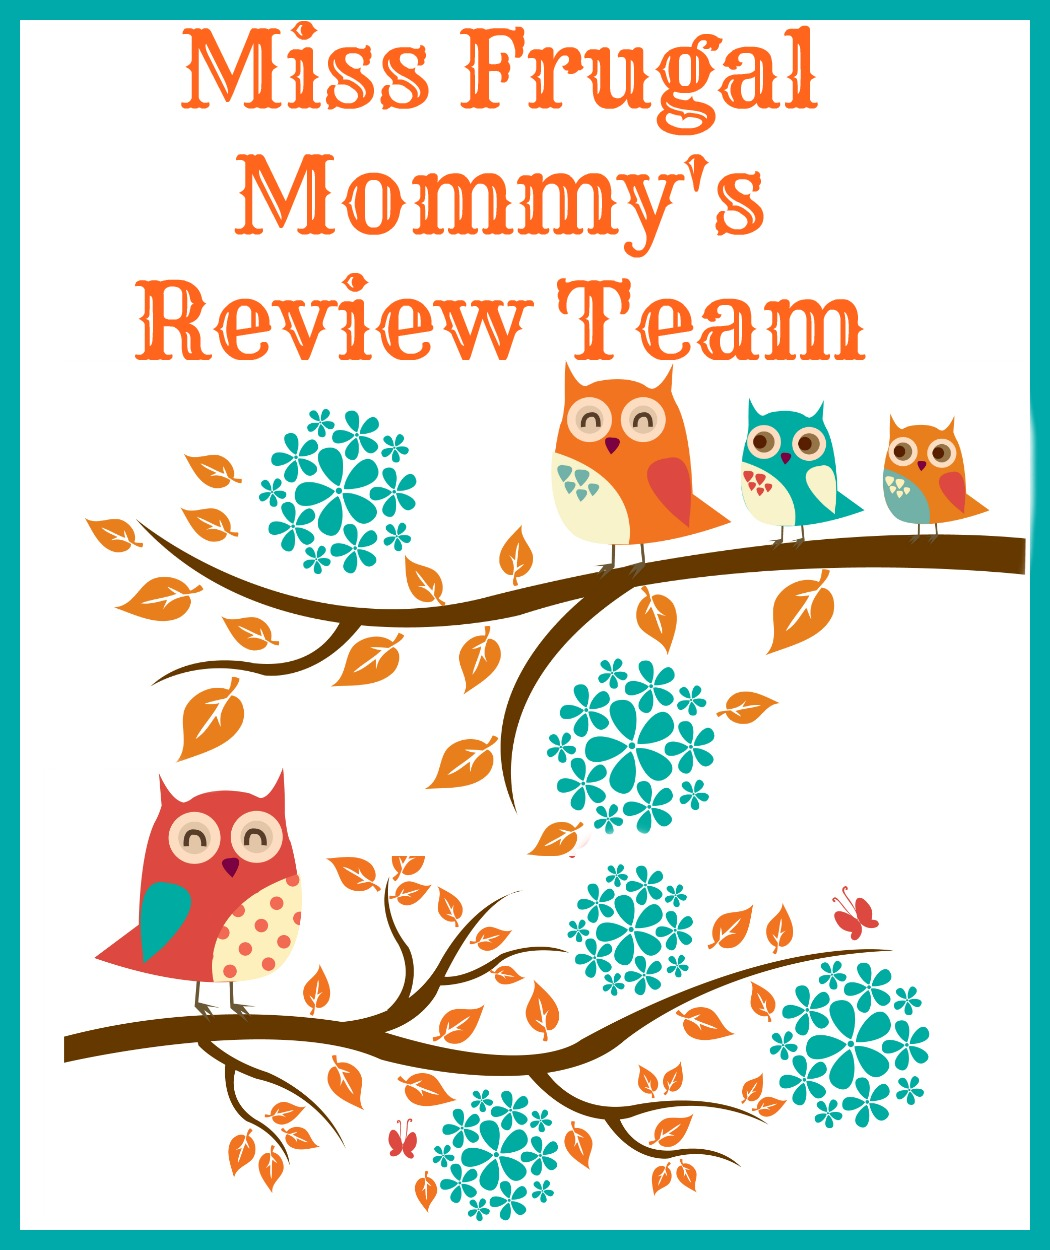 http://missfrugalmommy.com/wp-content/uploads/2013/06/Review-Team.jpg